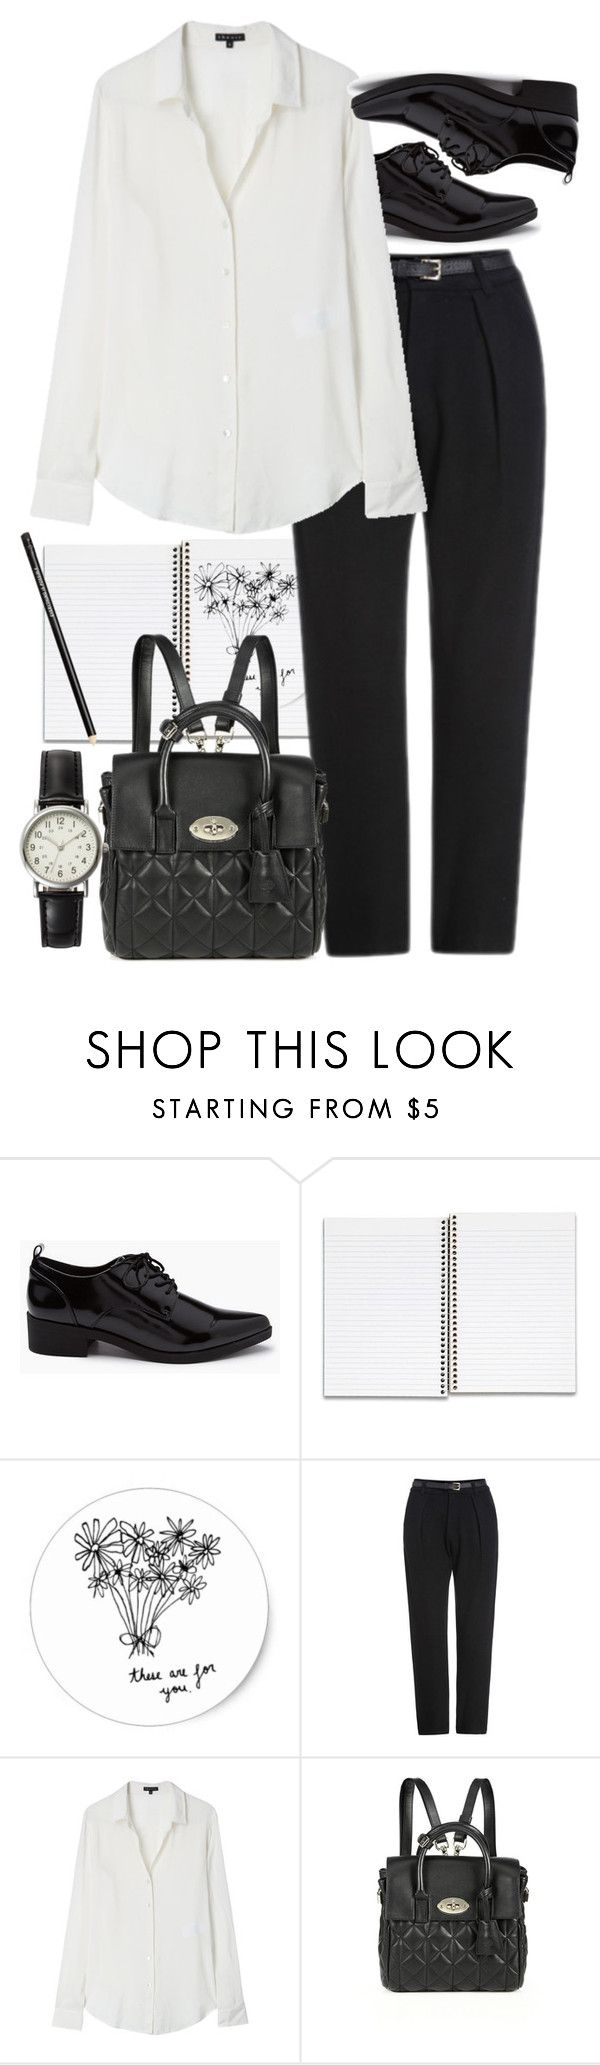 """Untitled #8799"" by nikka-phillips ❤ liked on Polyvore featuring mode, Forever 21, Theory, Mulberry et FOSSIL"